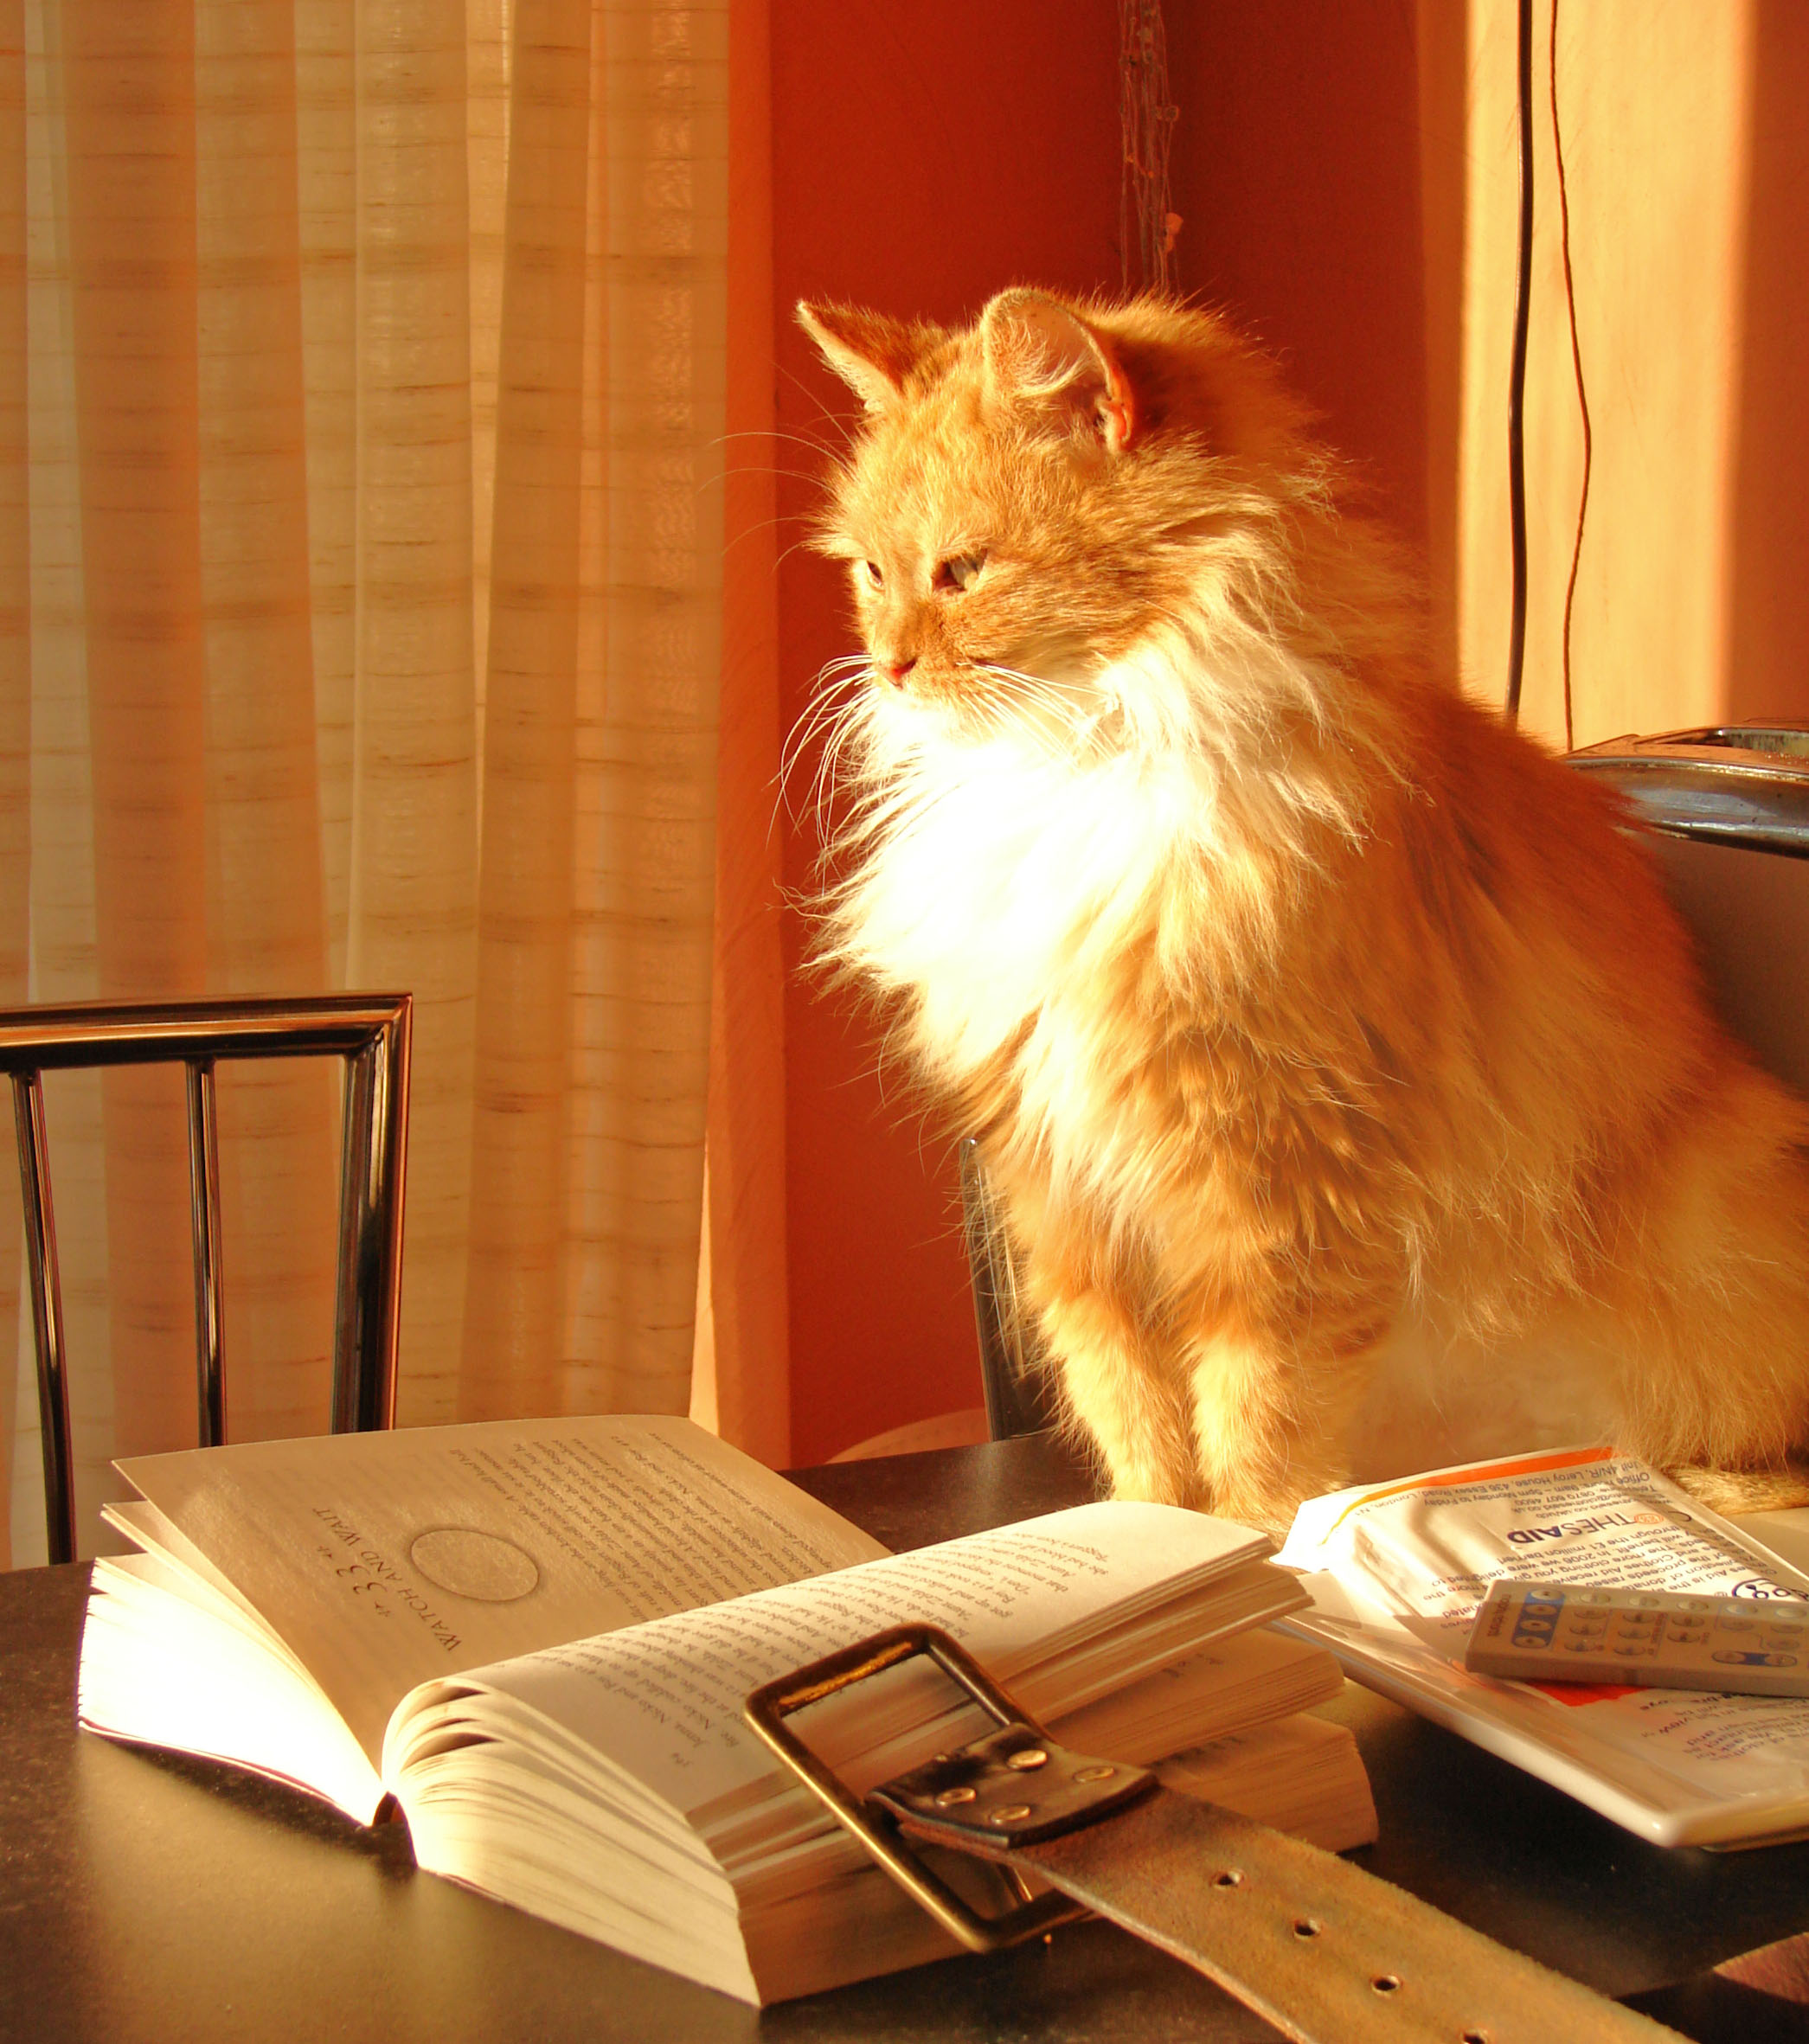 Cats and books photo